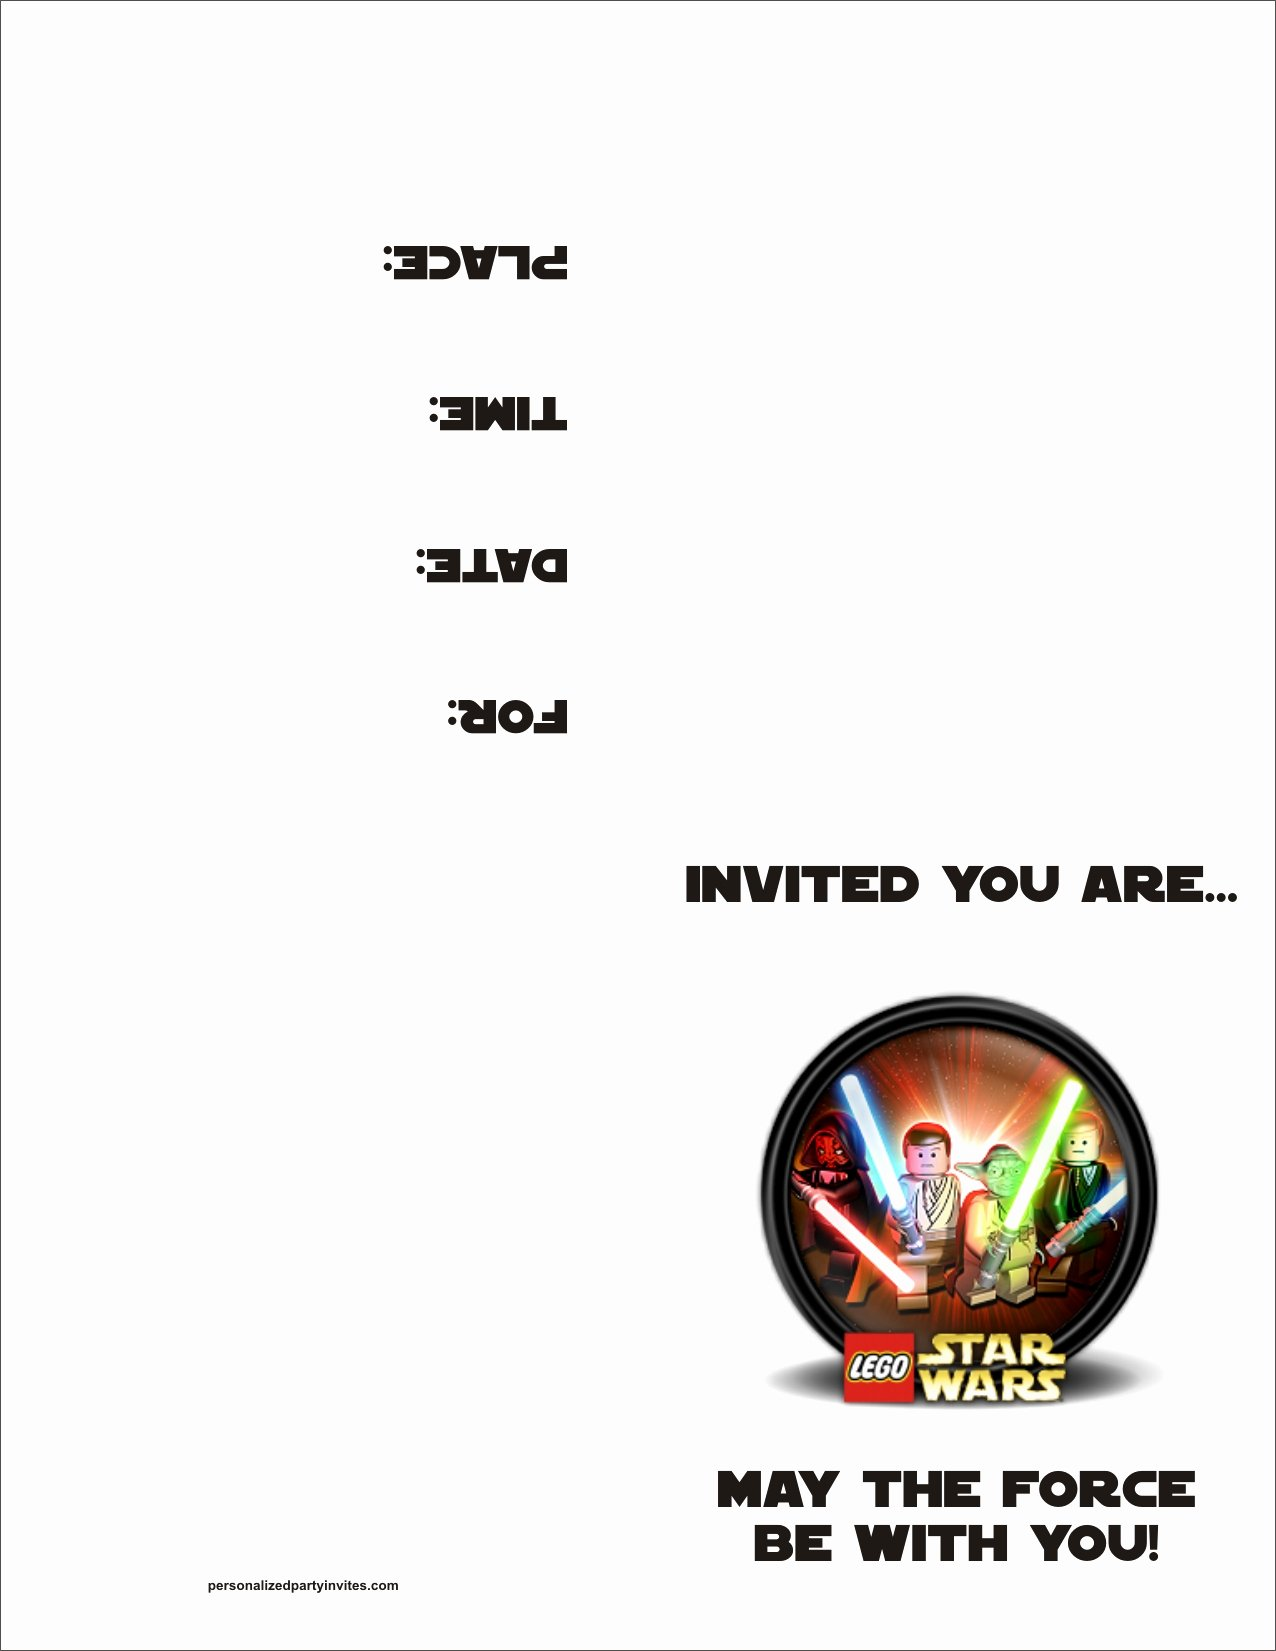 Lego Star Wars Birthday Invitations Awesome Lego Star Wars Free Printable Birthday Party Invitation